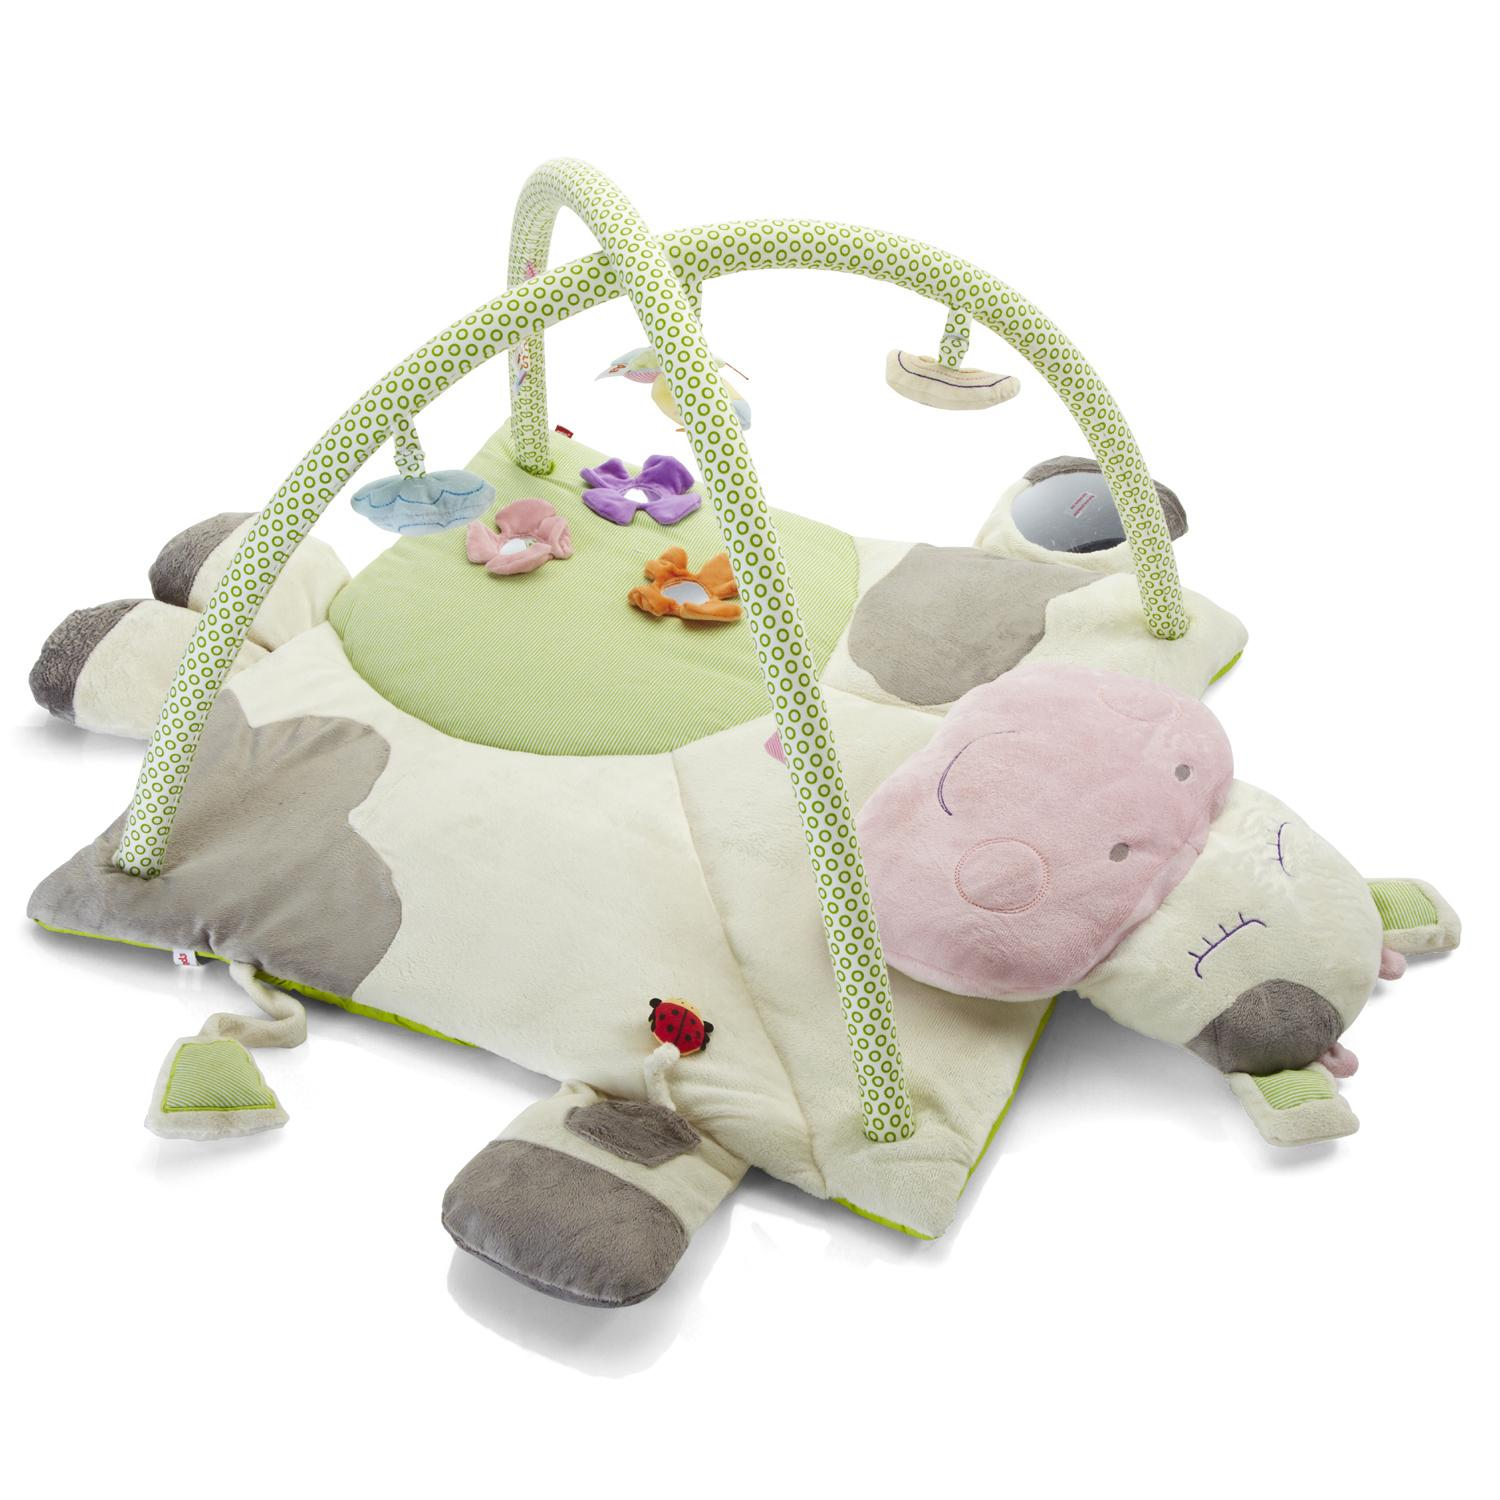 Baby Floor Toys : New celery cow friends luxury baby activity floor play